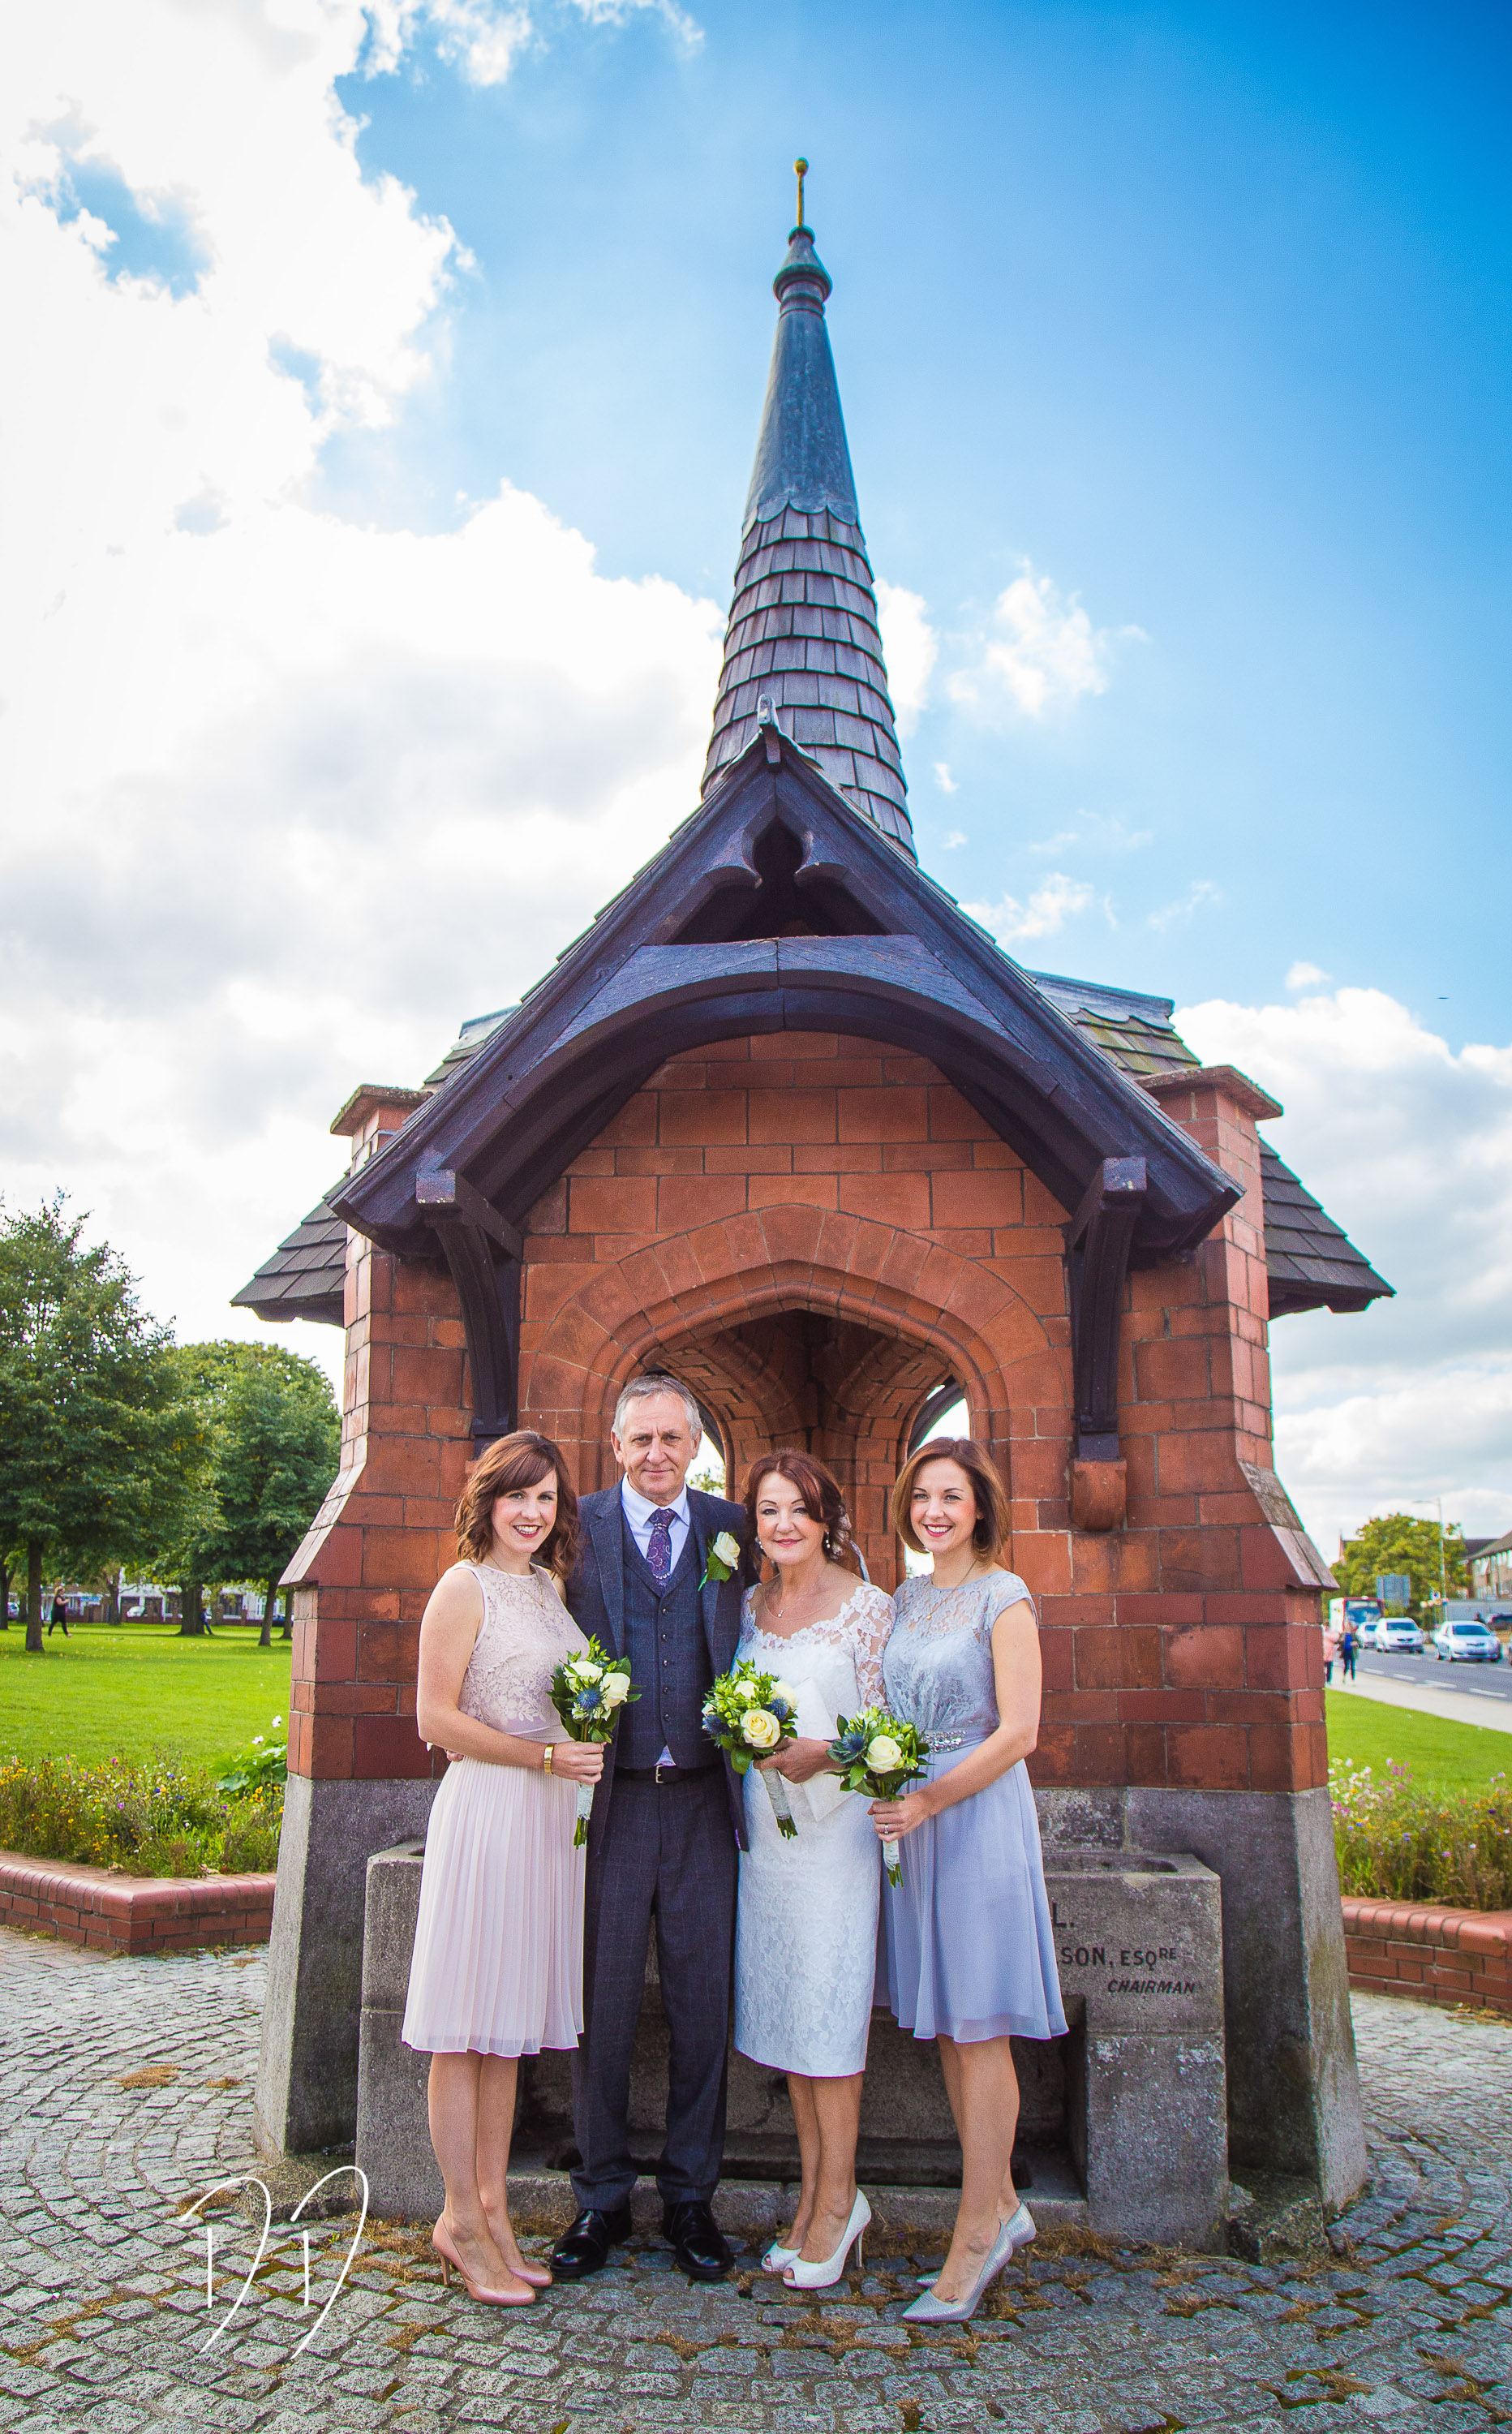 The Lady of Lourdes Church photography